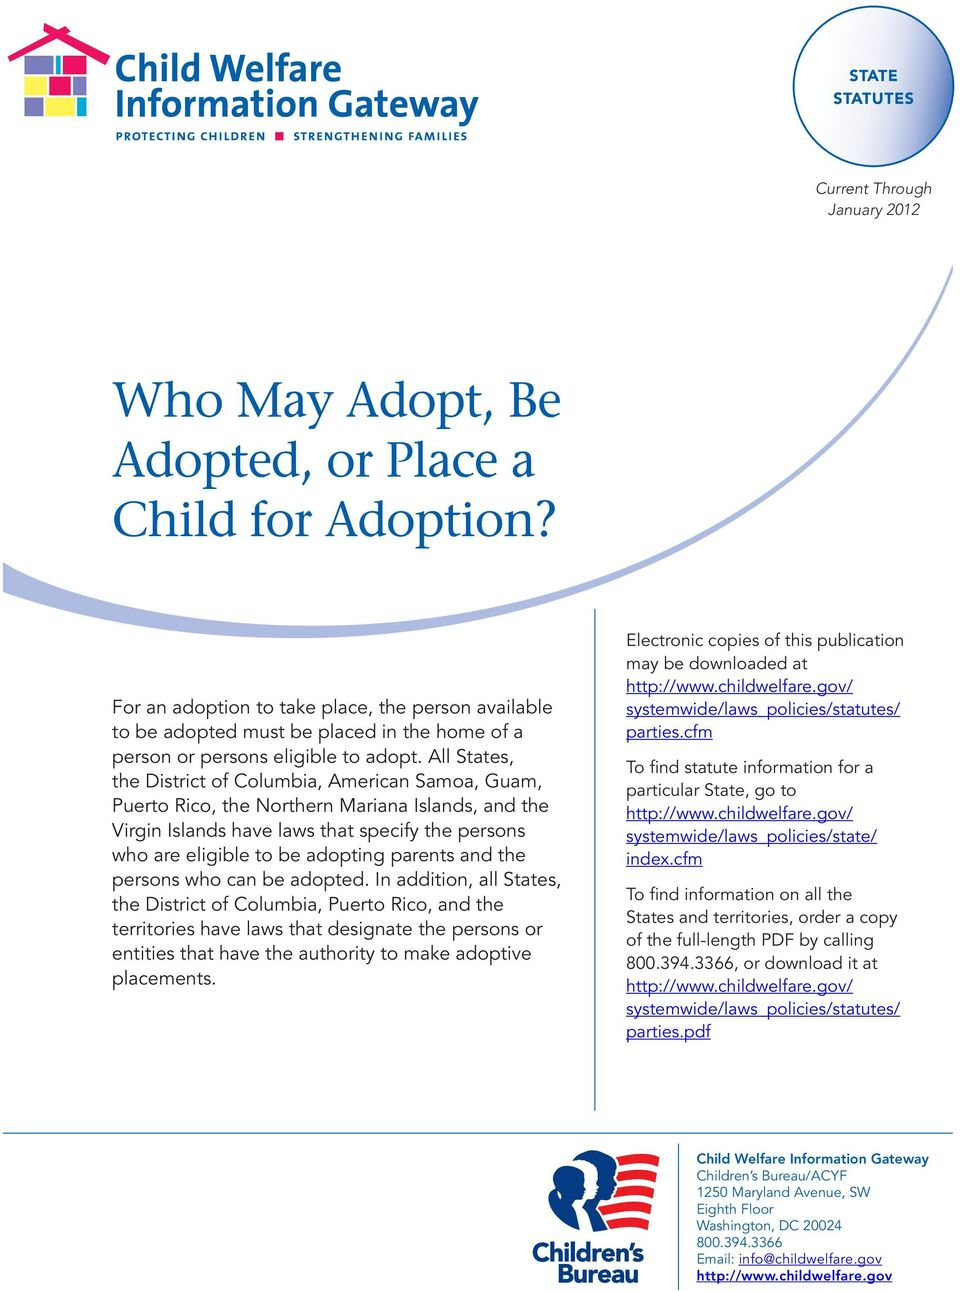 All States, the District of Columbia, American Samoa, Guam, Puerto Rico, the Northern Mariana Islands, and the Virgin Islands have laws that specify the persons who are eligible to be adopting